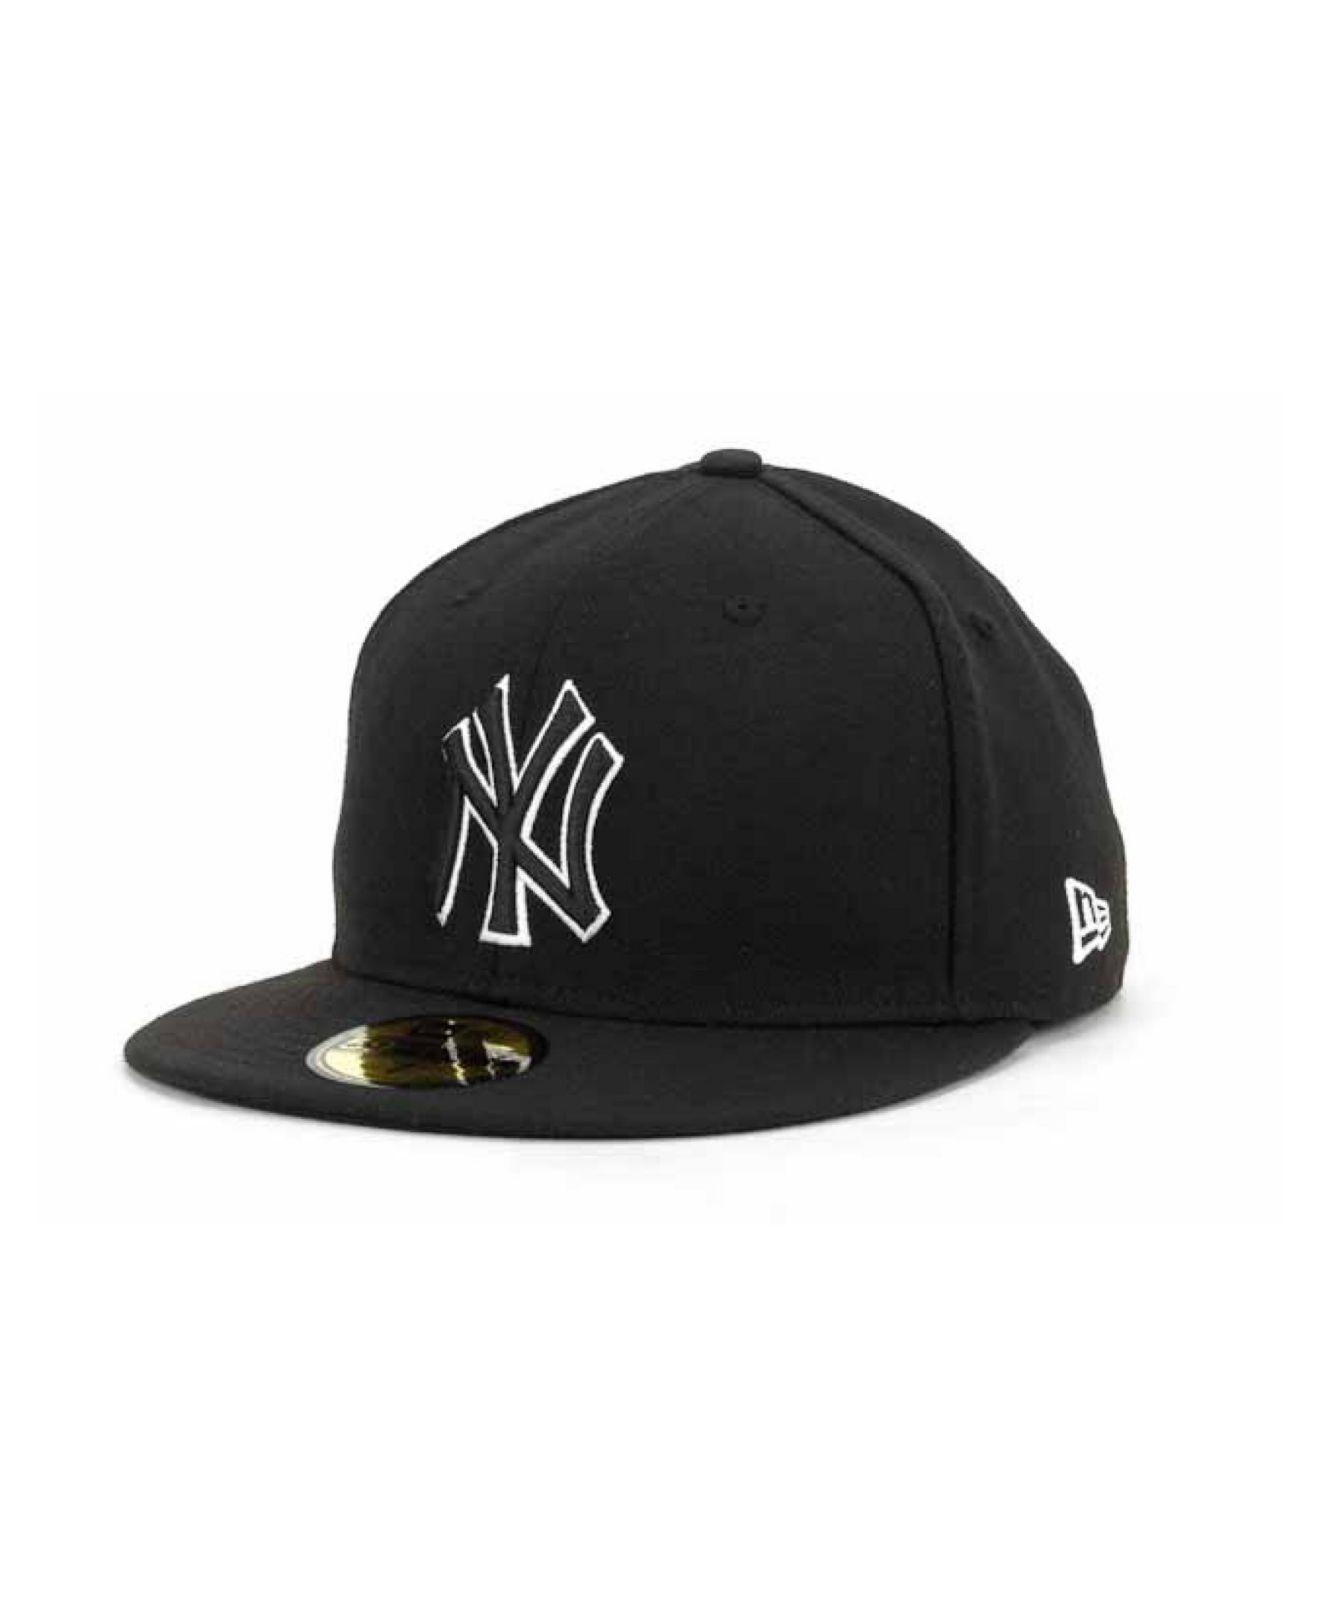 92b573cc ... wholesale ktz new york yankees black and white fashion 59fifty cap for men  lyst. view